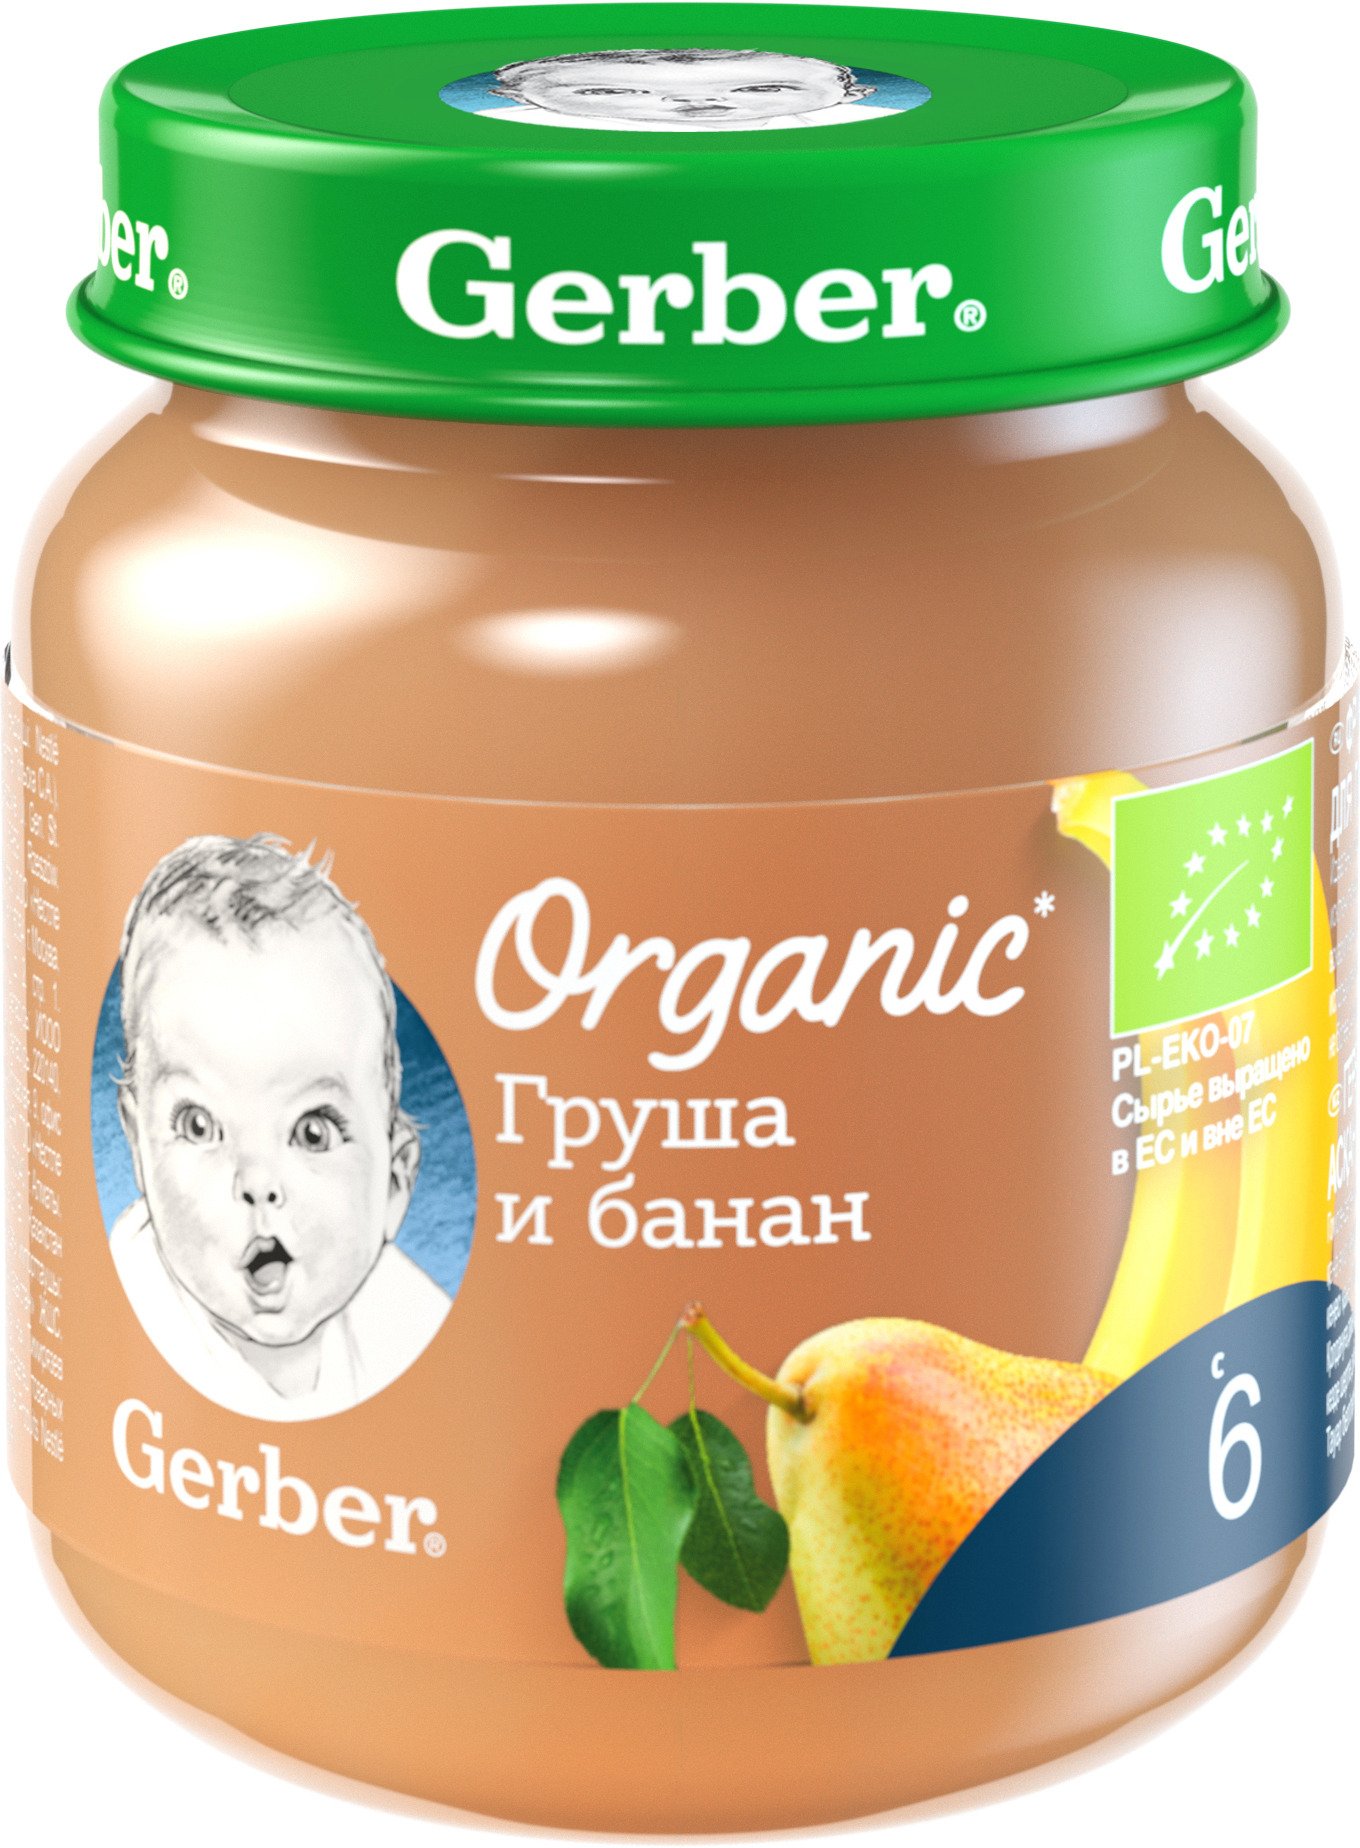 Пюре Gerber Organic «Груша и банан» с 6 мес. 125 г printio speed скорость